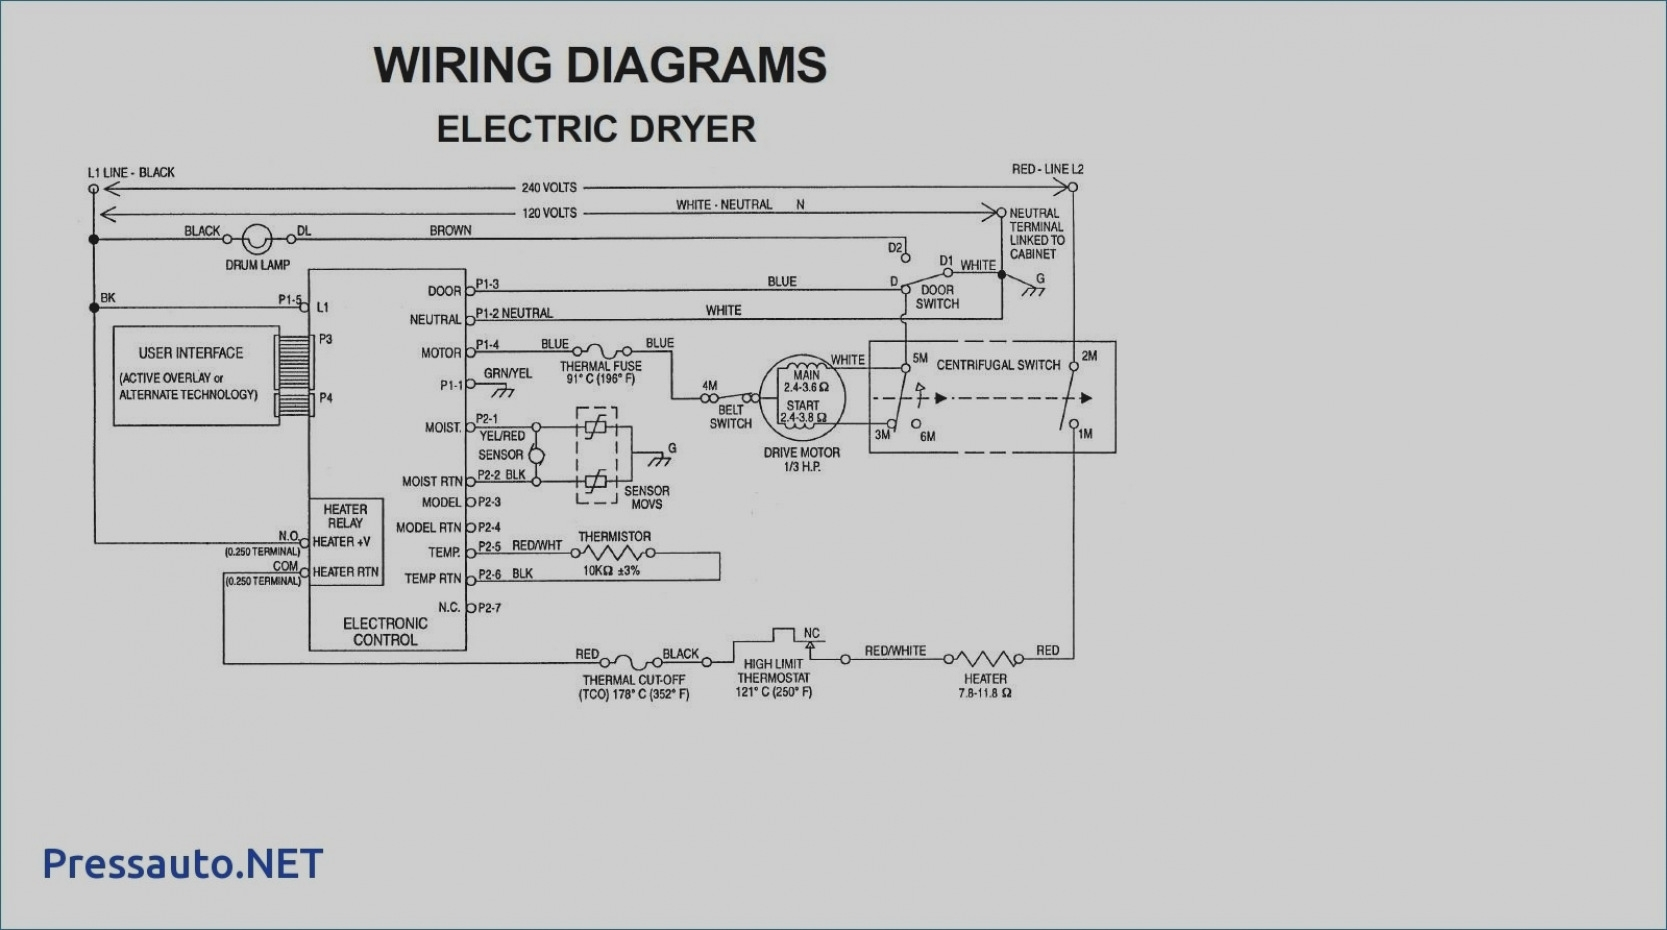 Whirlpool Electric Dryer Wiring Diagram